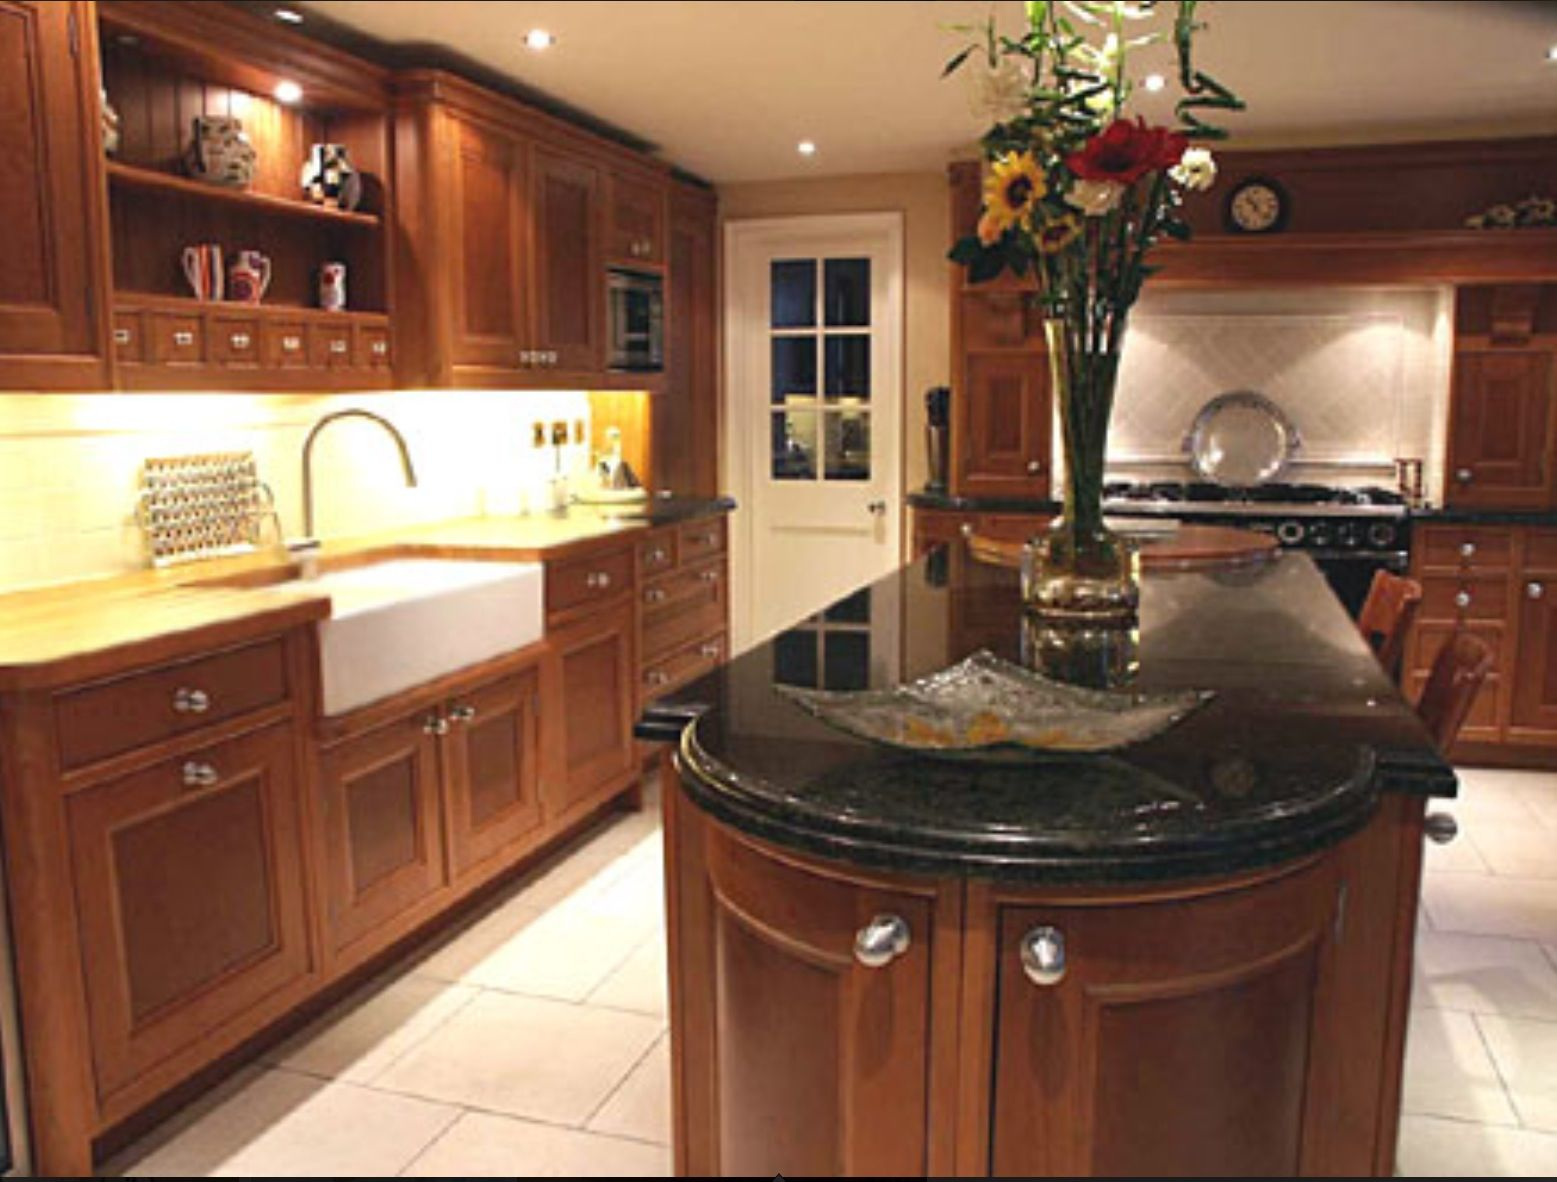 black countertop is not bad idea traditional kitchen design on kitchen decor black countertop id=31215